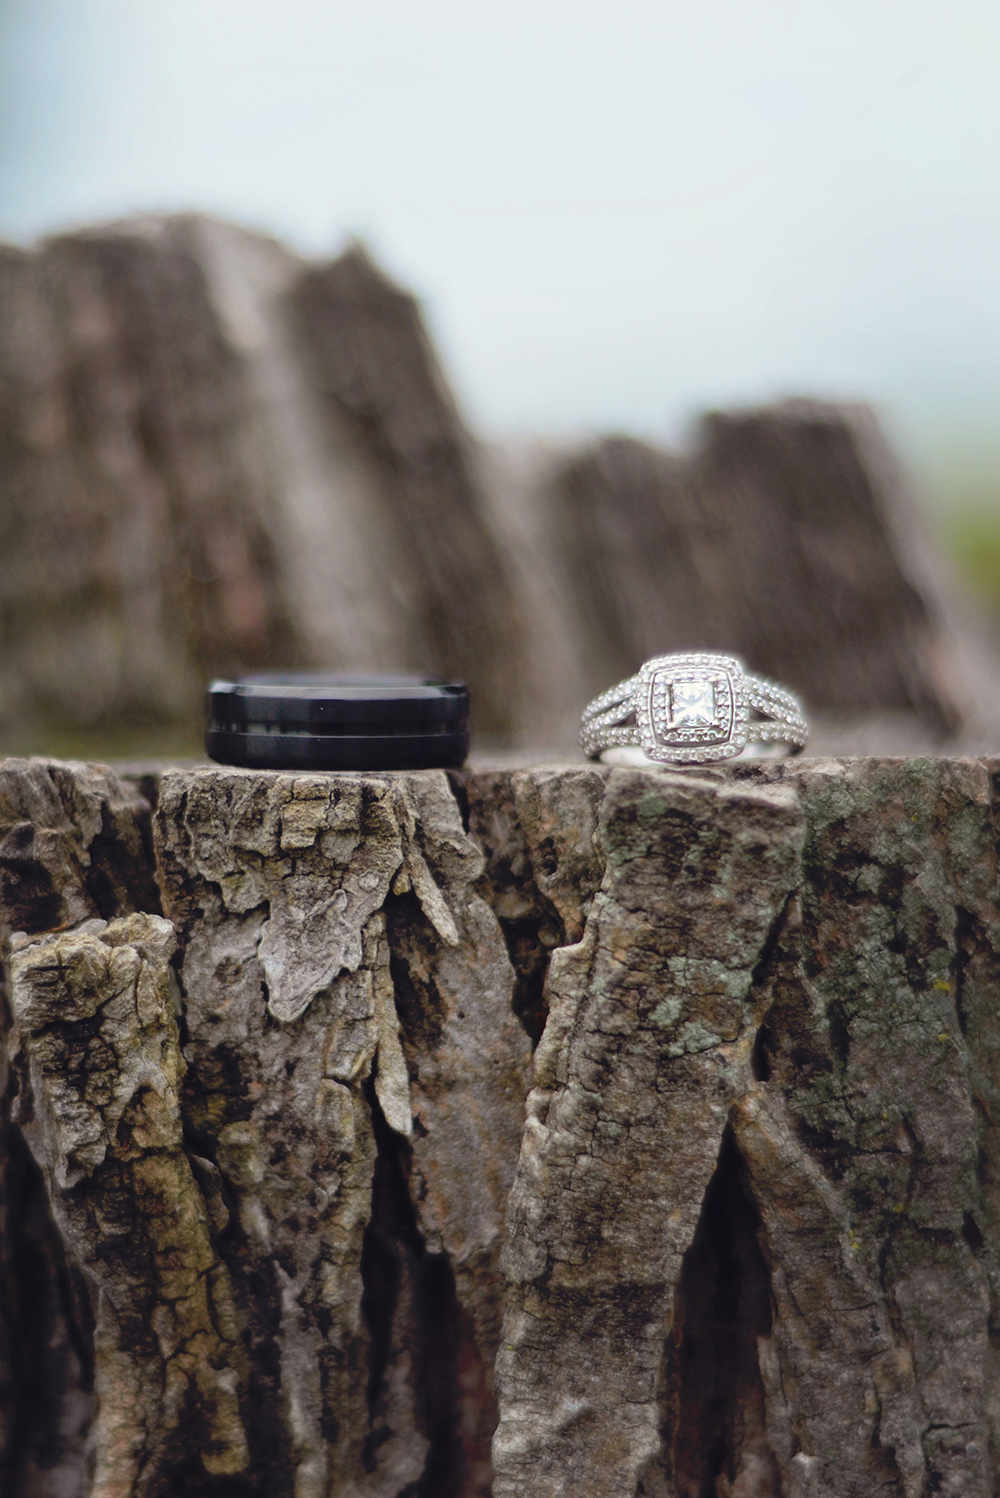 close-up-of-wedding-rings-on-tree-stump